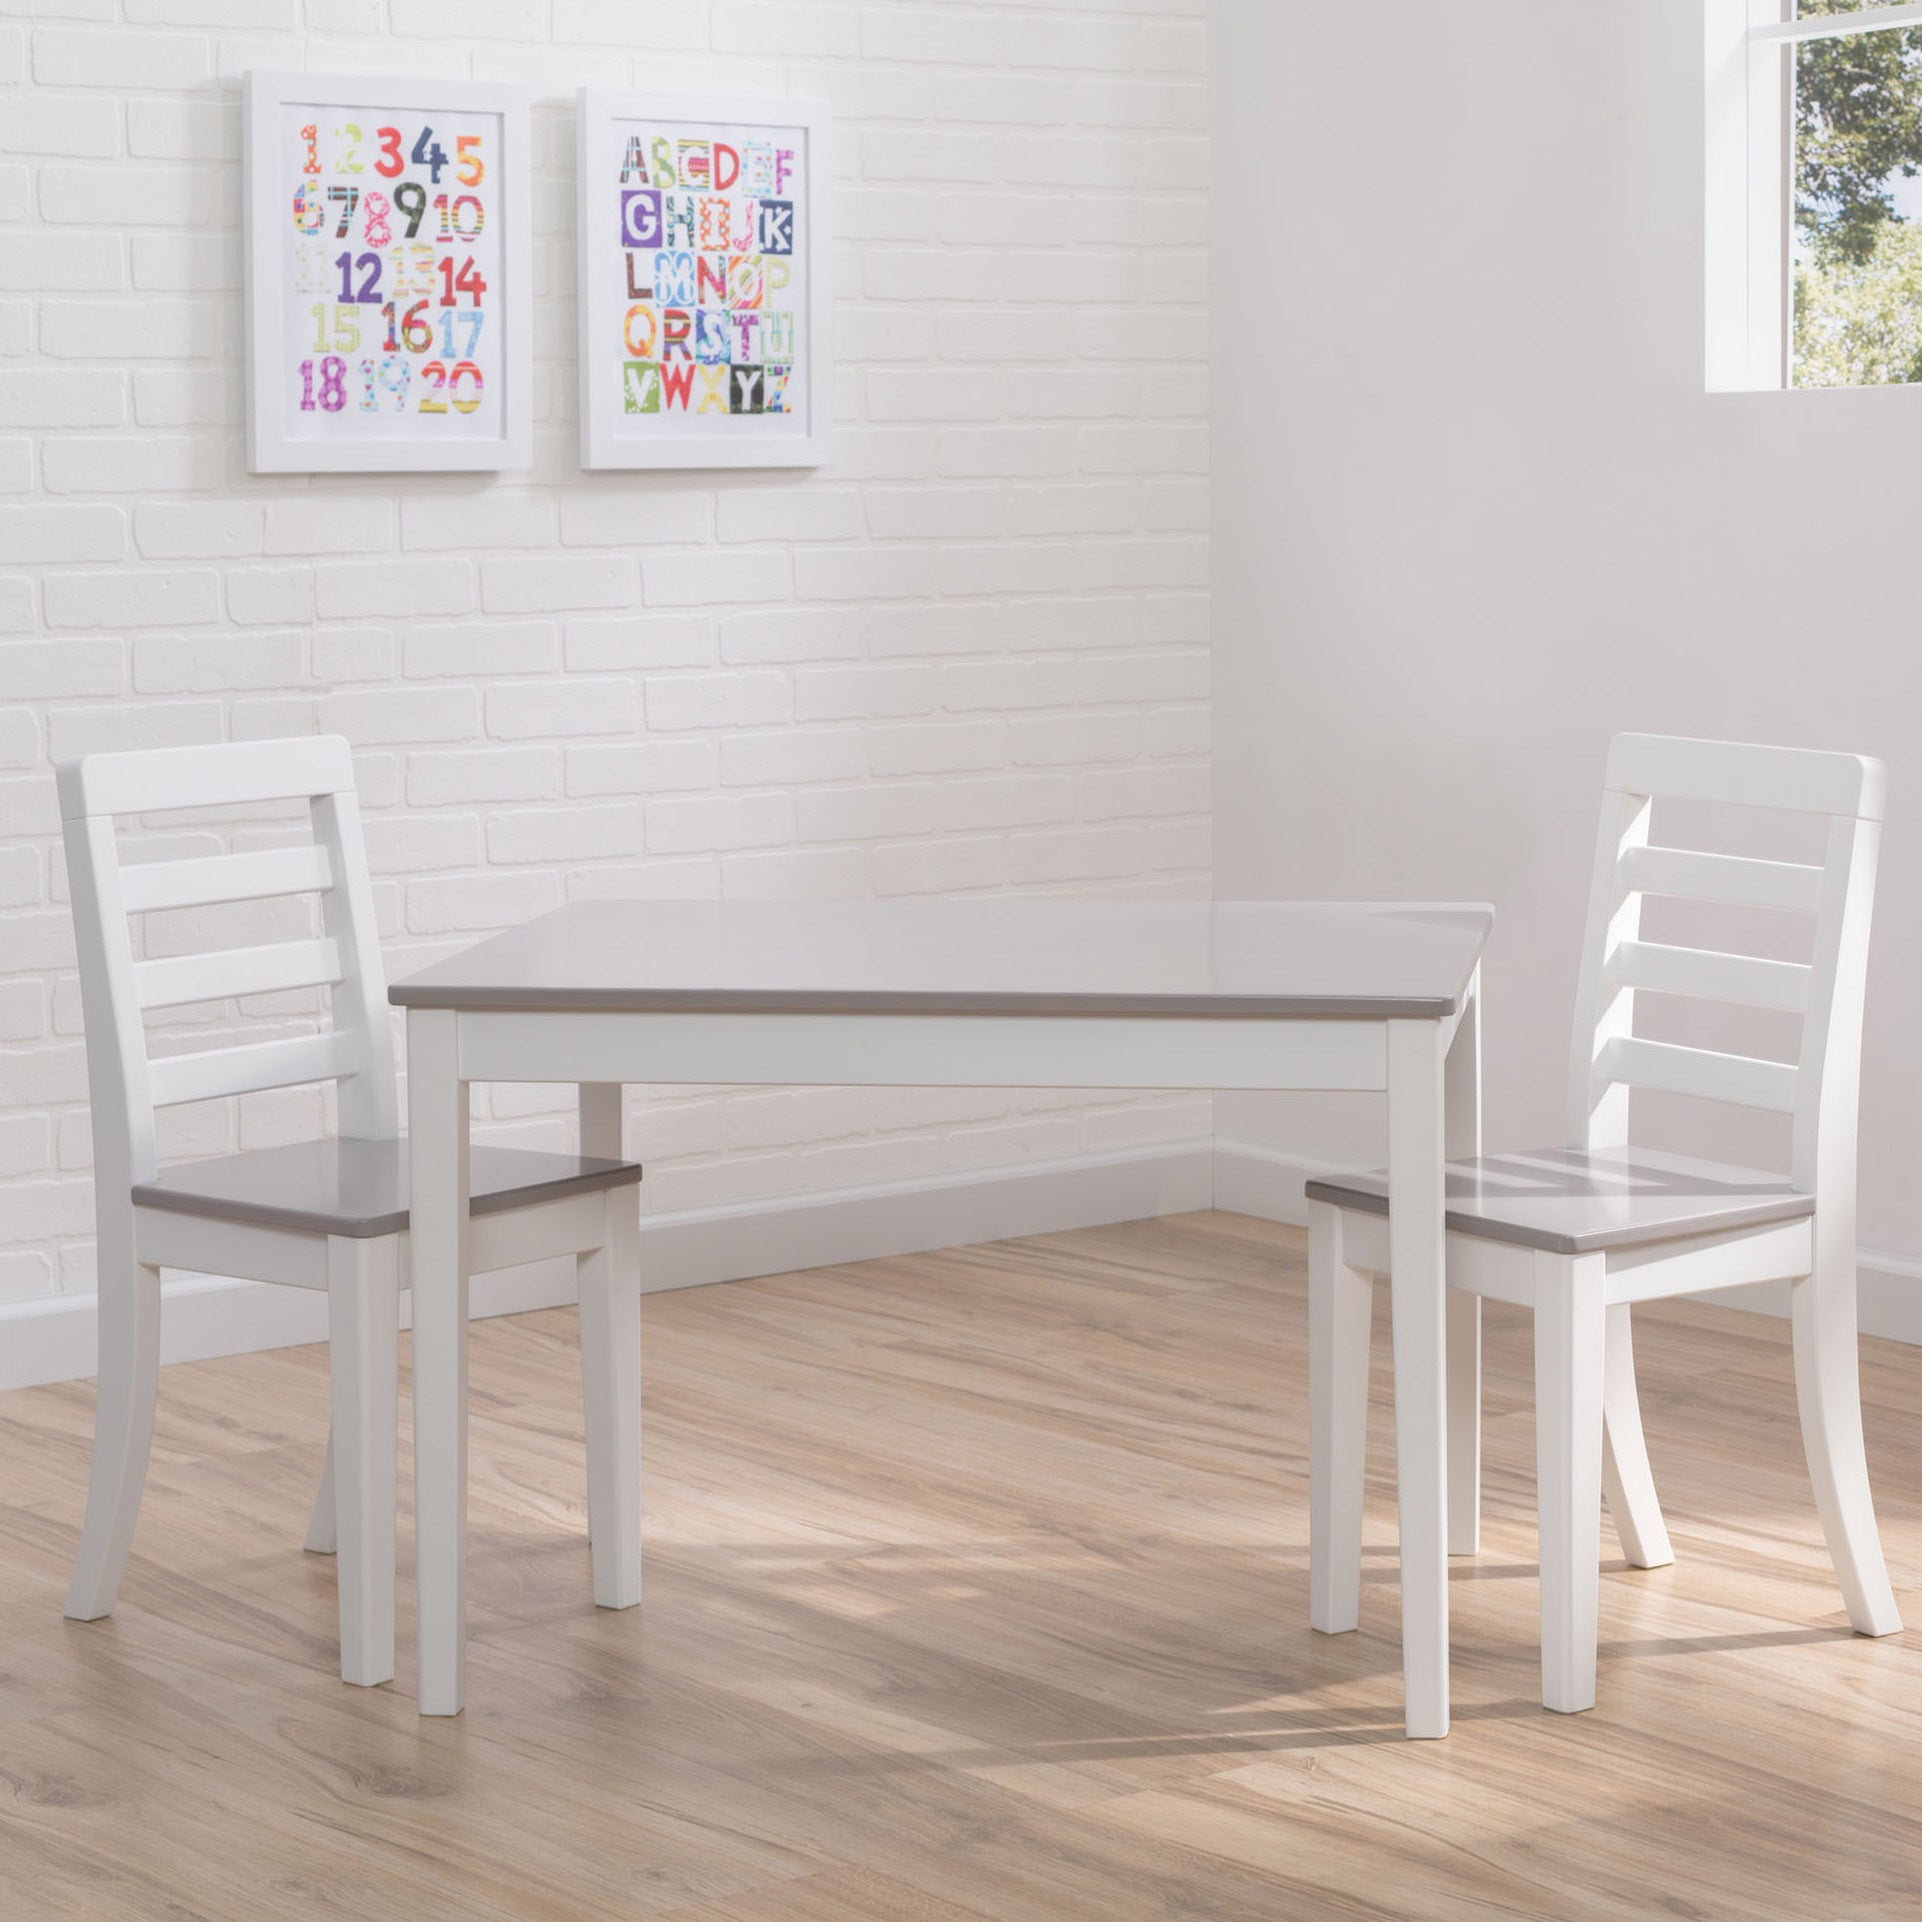 Delta Children 3-piece Grey and White Table and Chairs Se...